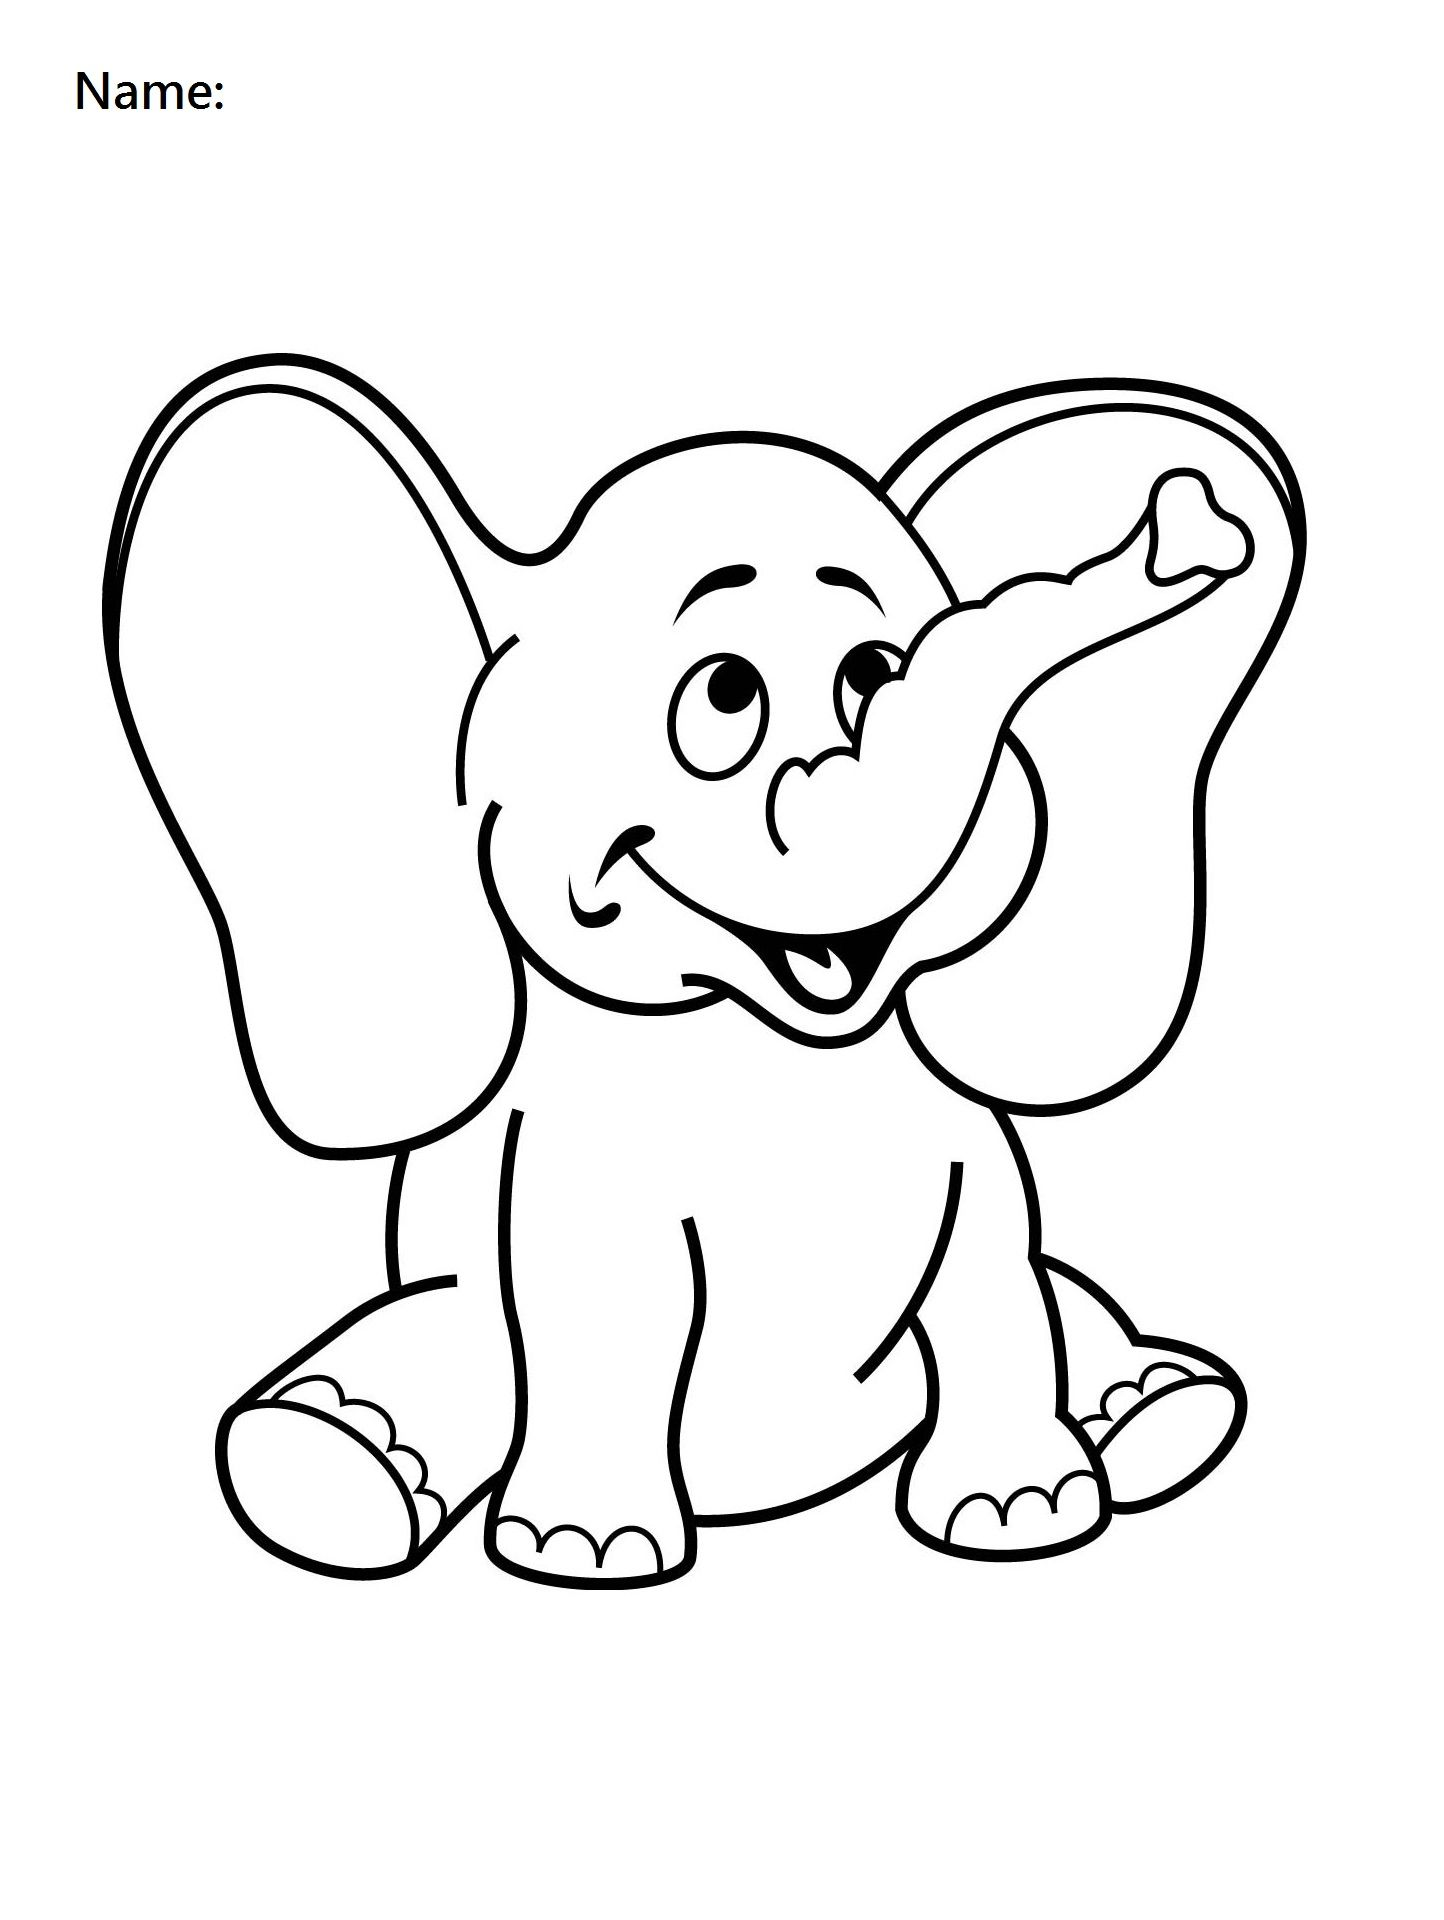 17 Year Old Worksheets Printable  Free coloring pages, Printable